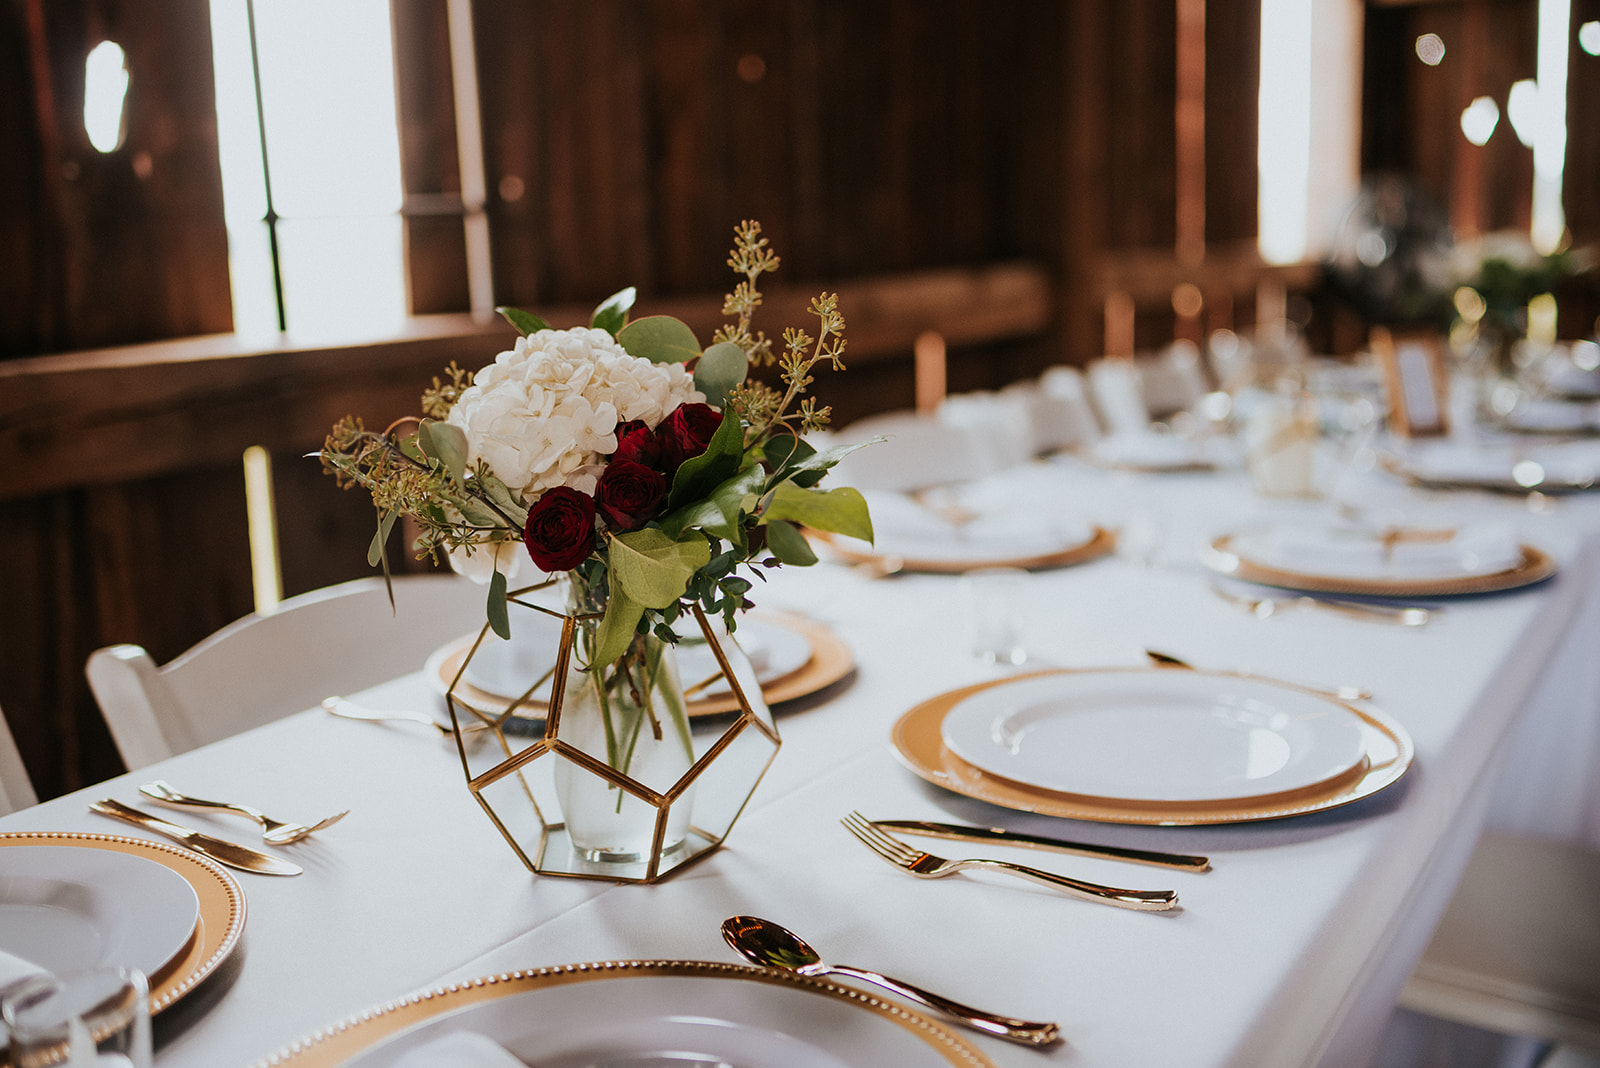 overthevineswisconsinwedding_1090.jpg